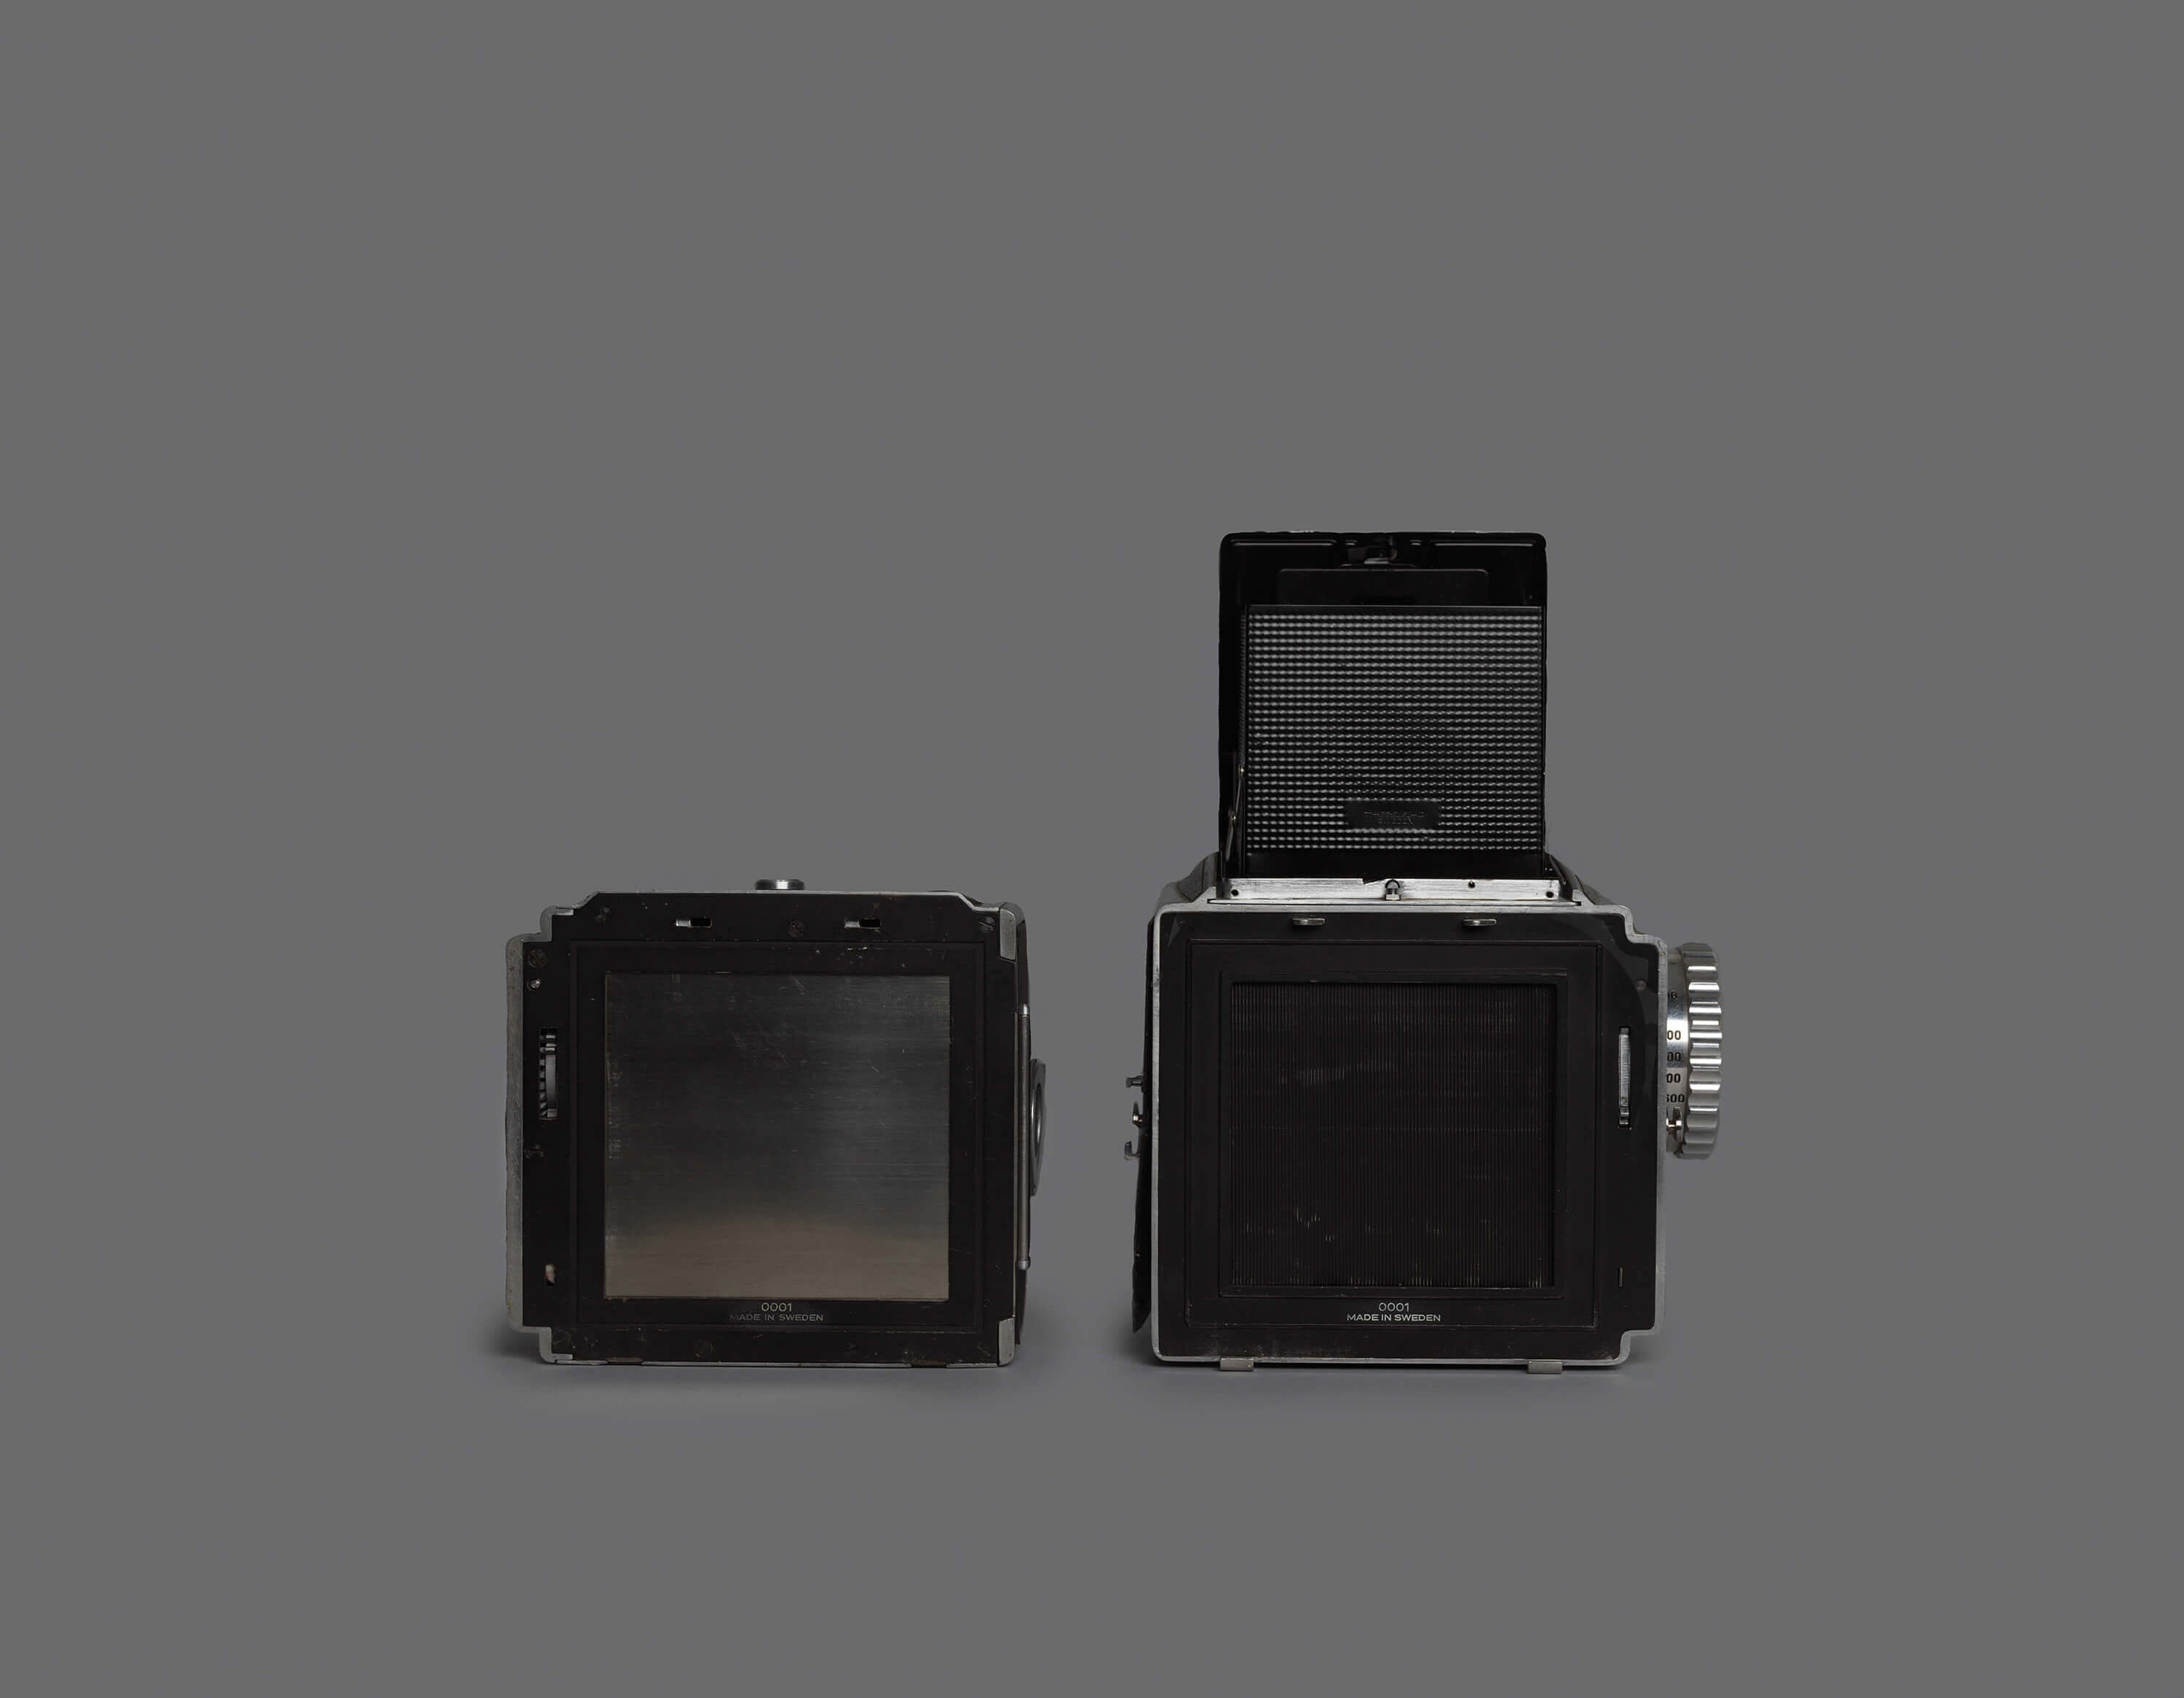 The Very First Hasselblad 1600F